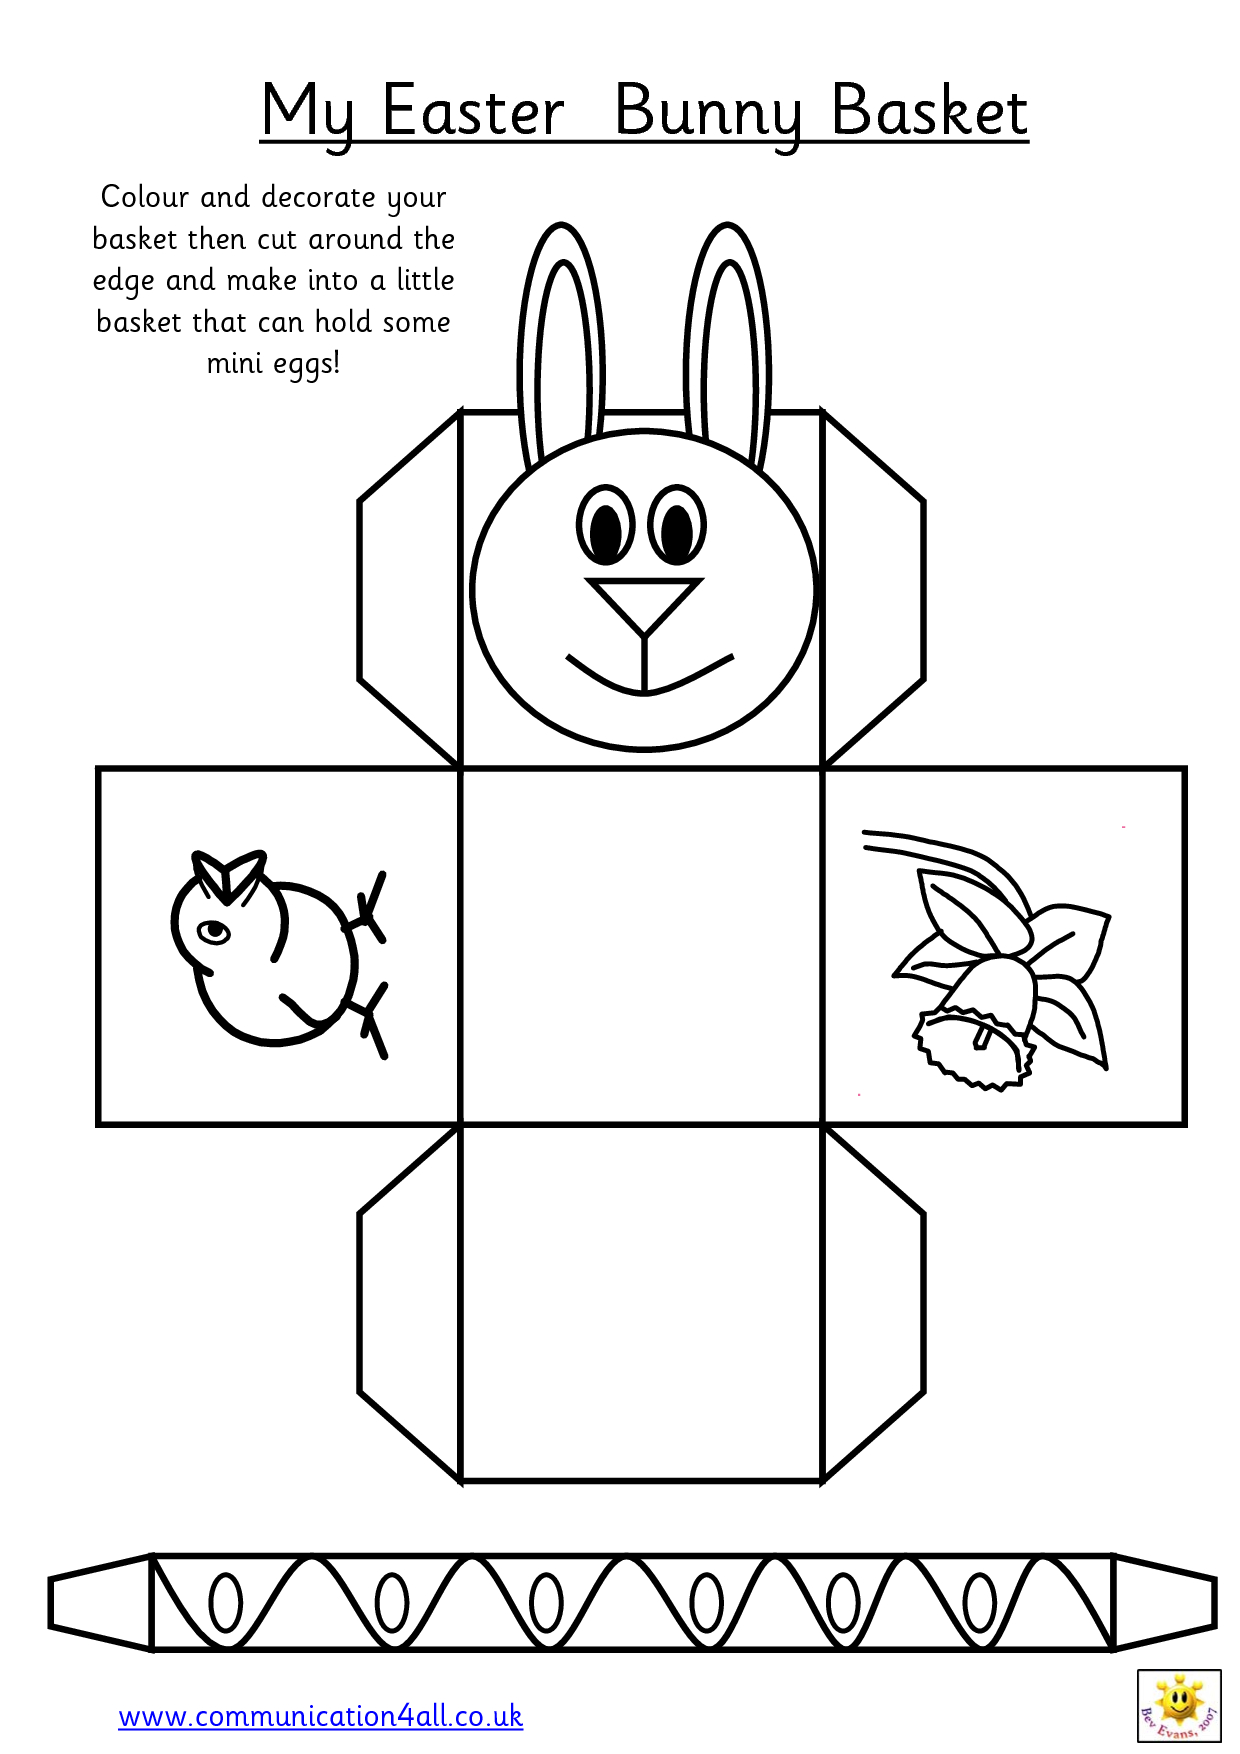 Printable Easter Egg Basket Templates – Hd Easter Images - Free Printable Easter Egg Basket Templates